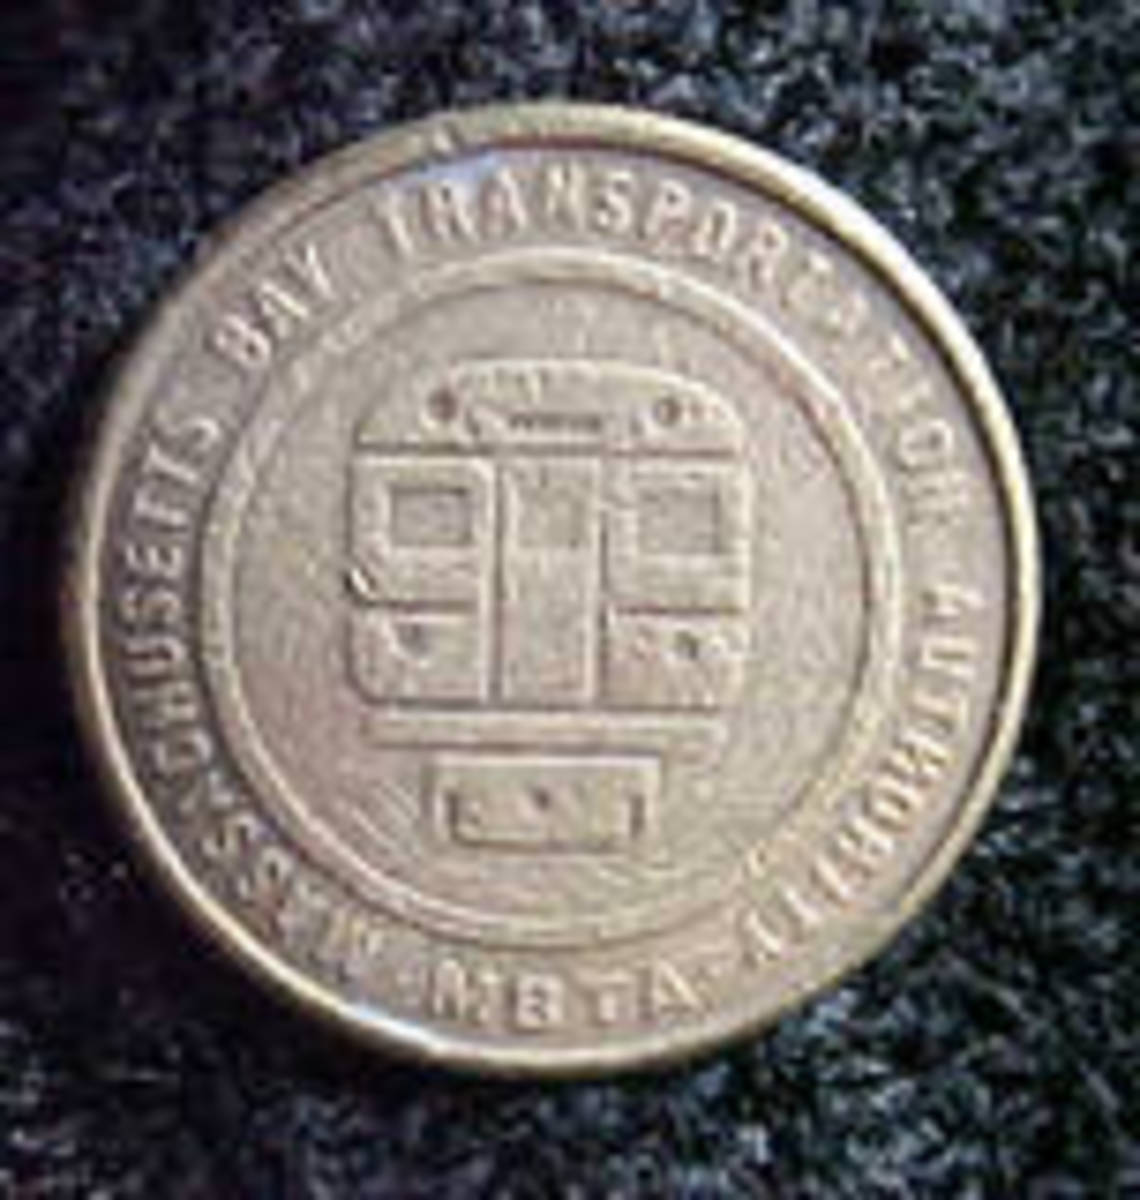 Collecting Transportation Tokens and Commemorative Coins